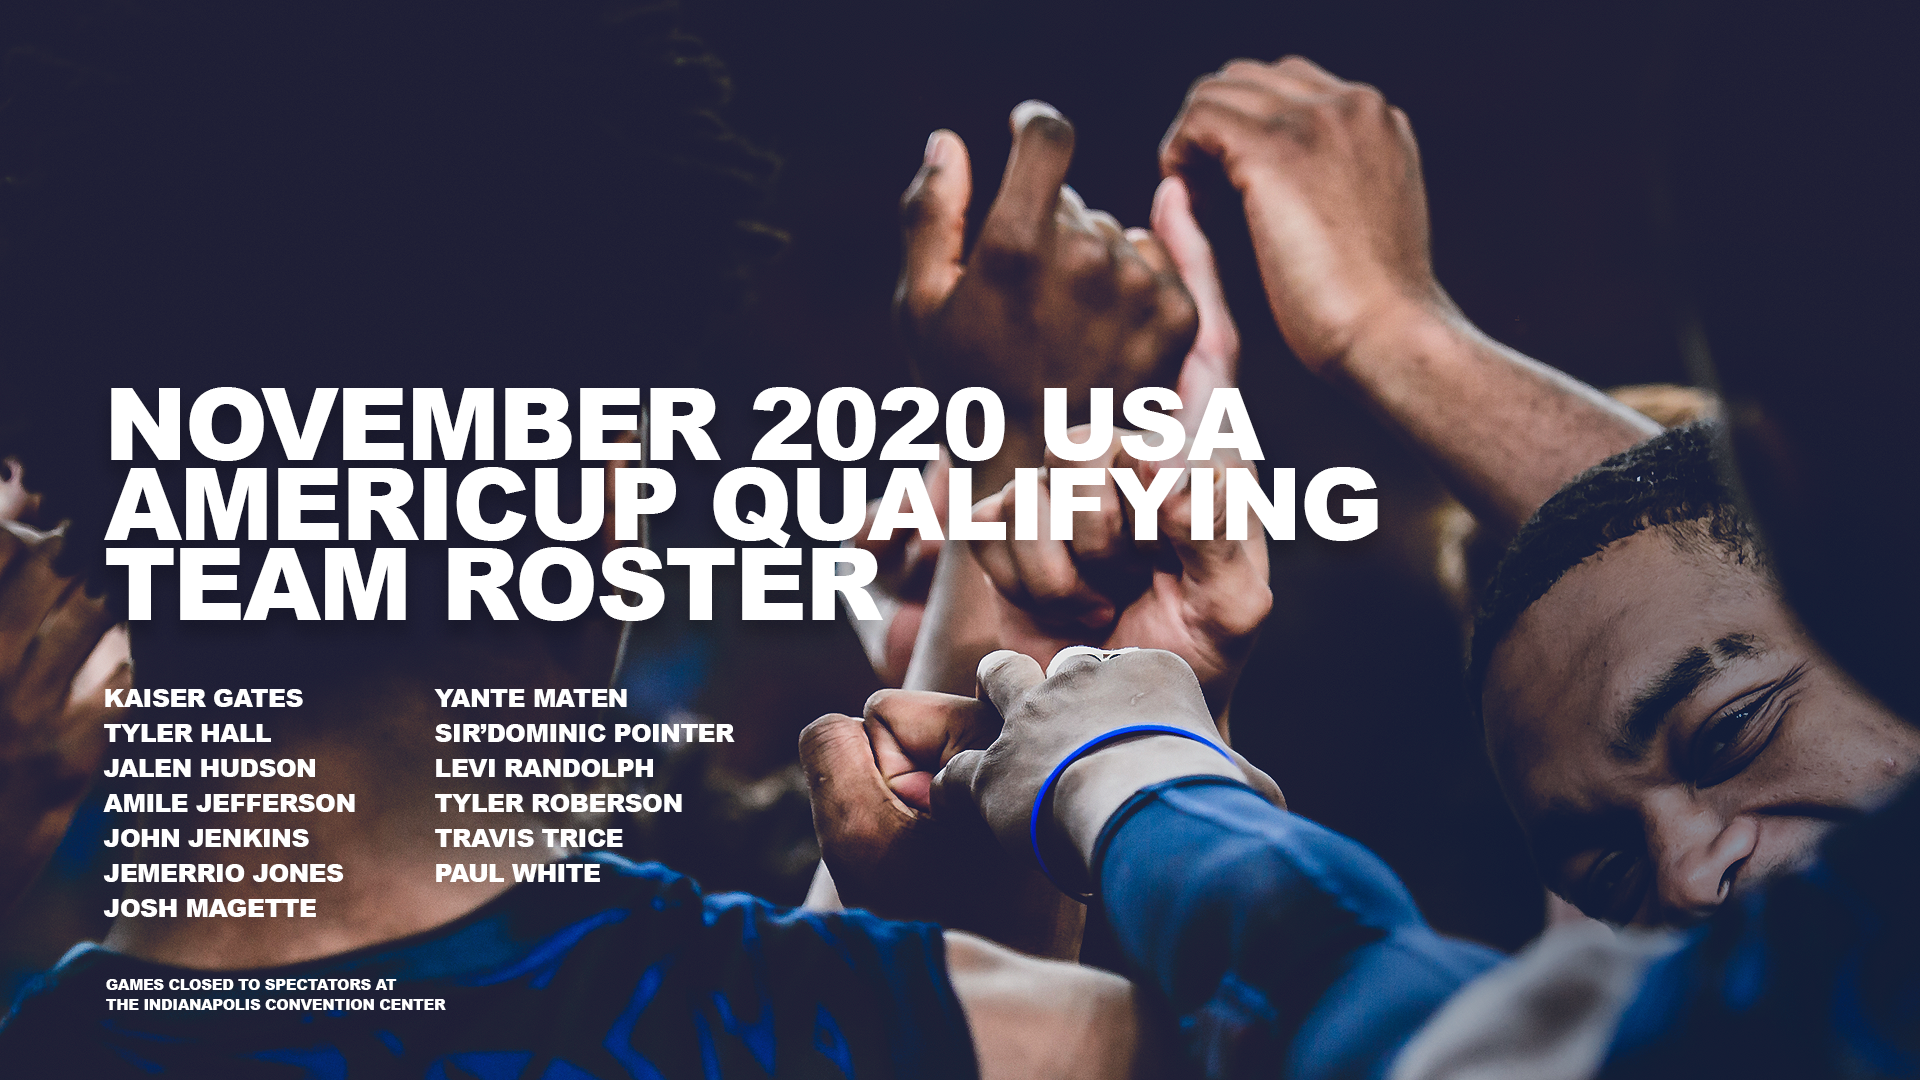 USA AmeriCup Qualifying Team November 2020